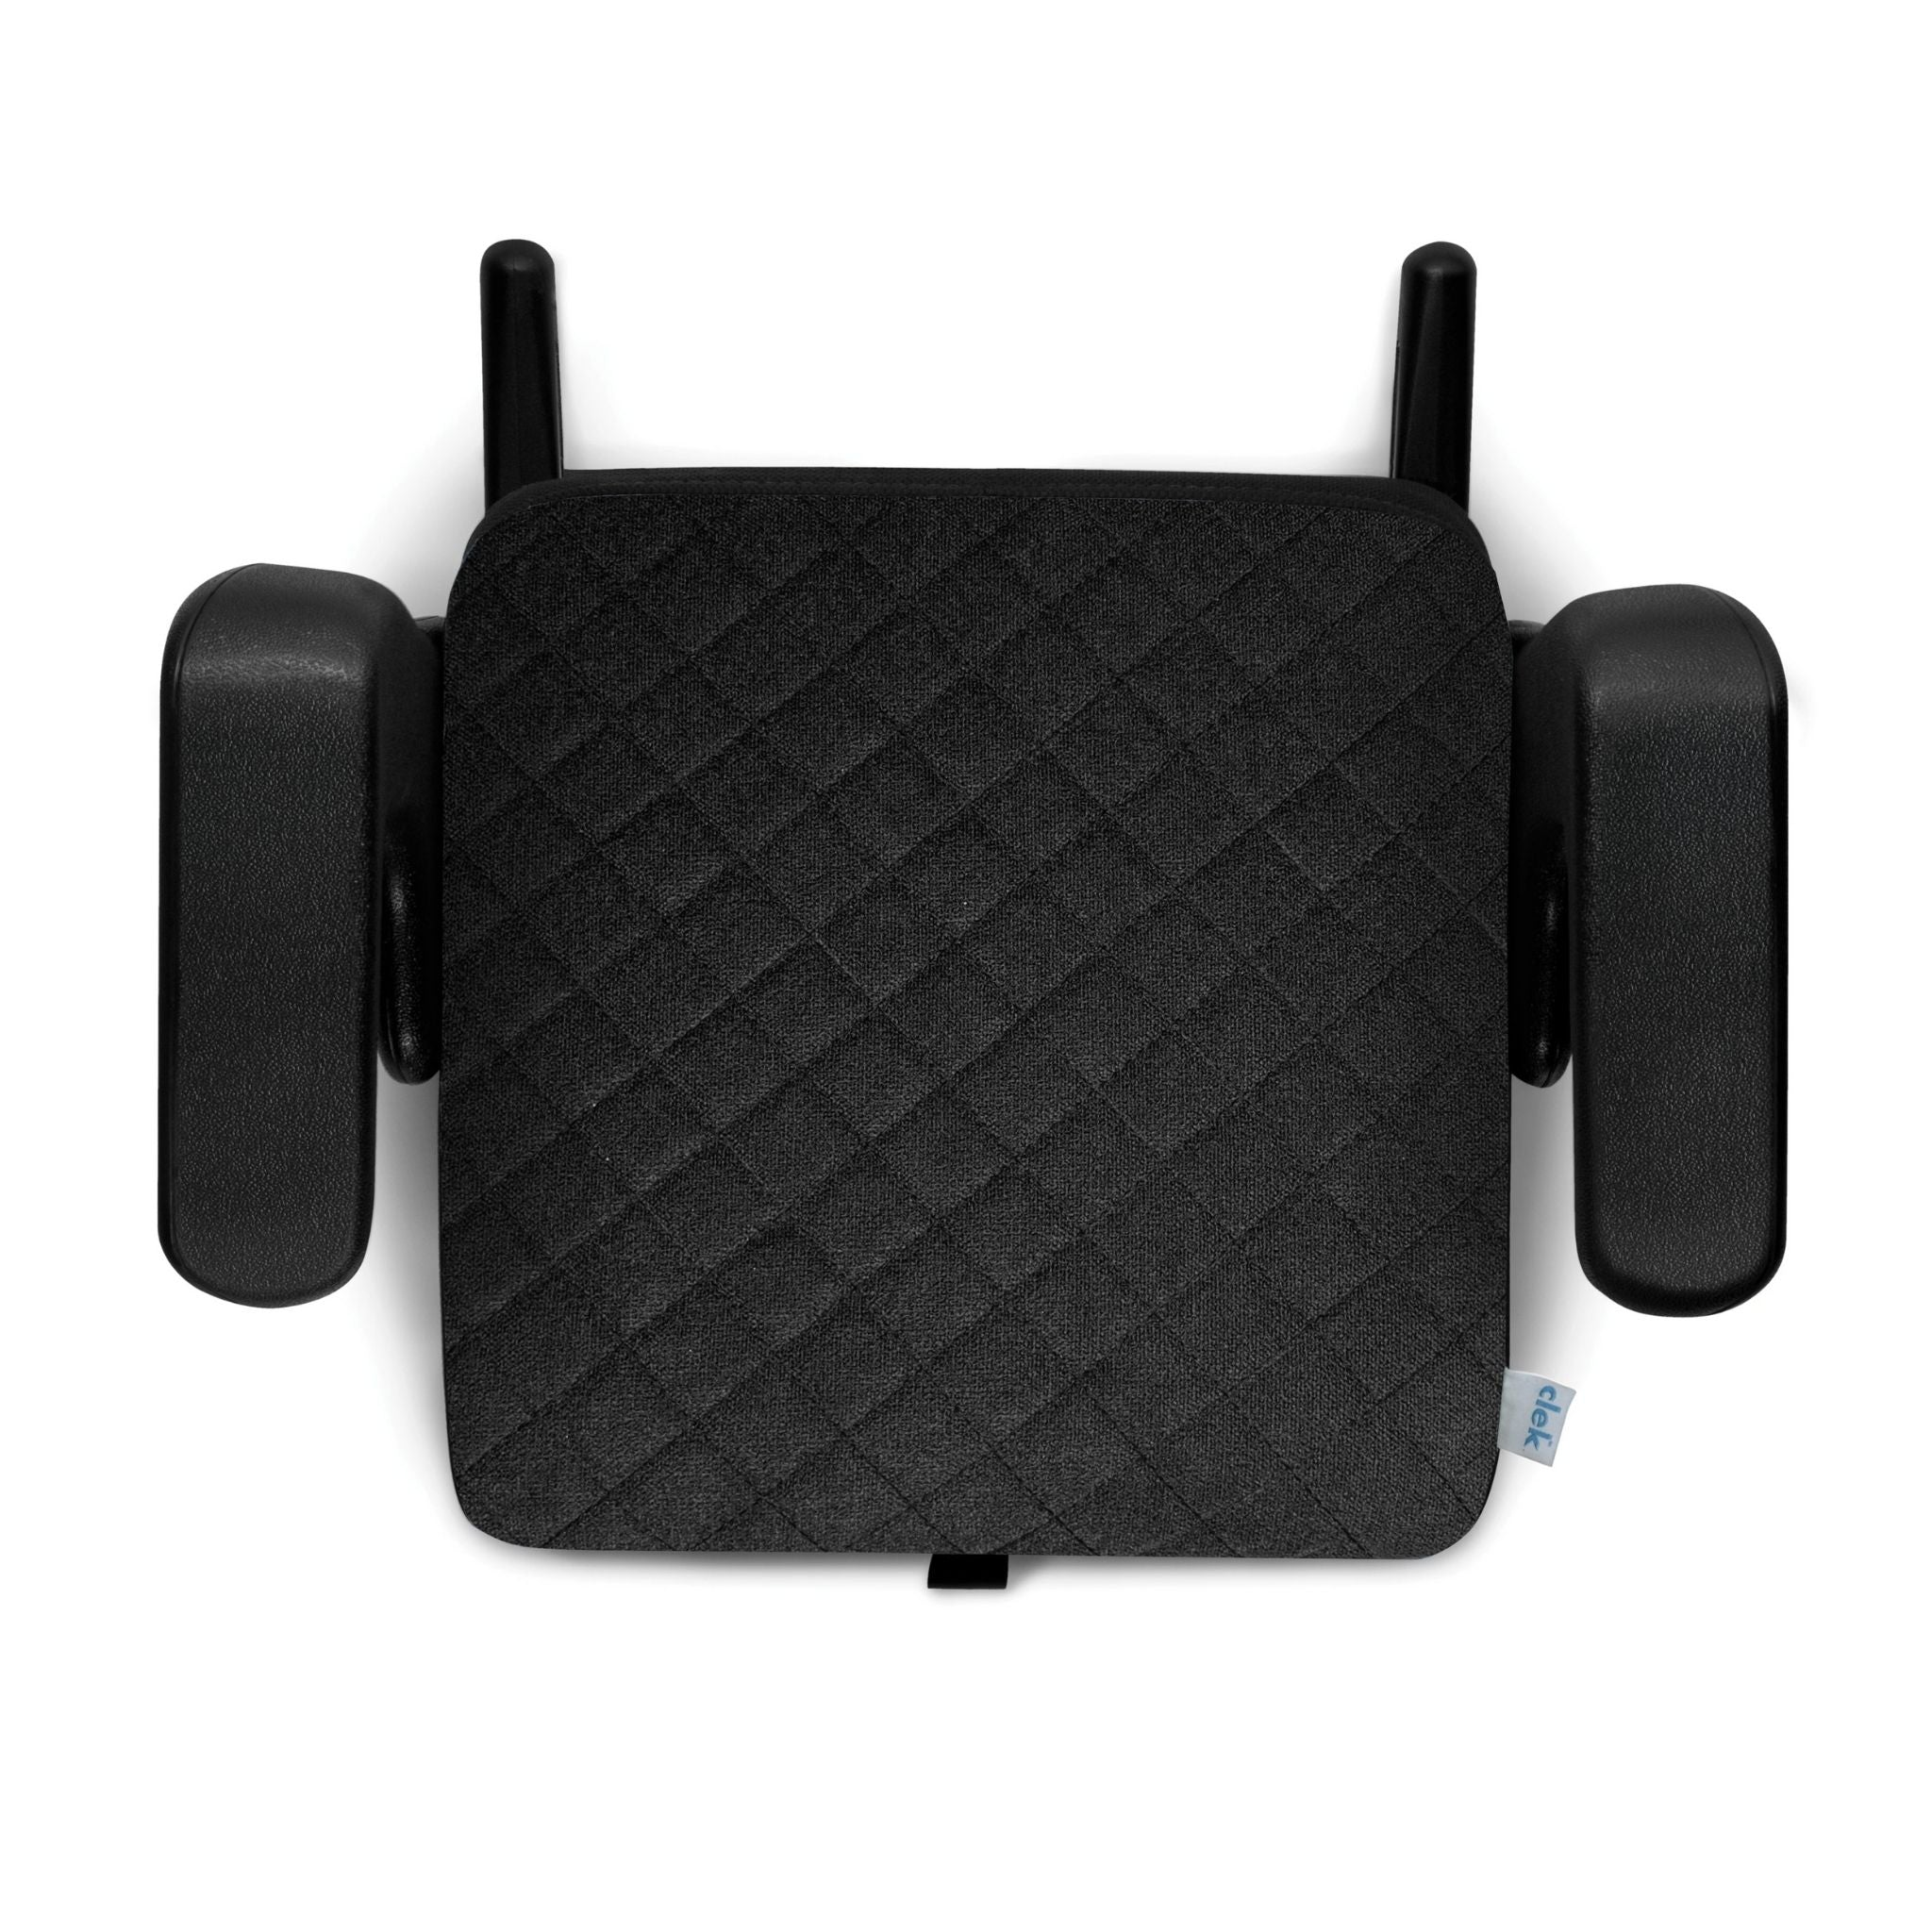 clek olli booster seat shadow x, black with x pattern